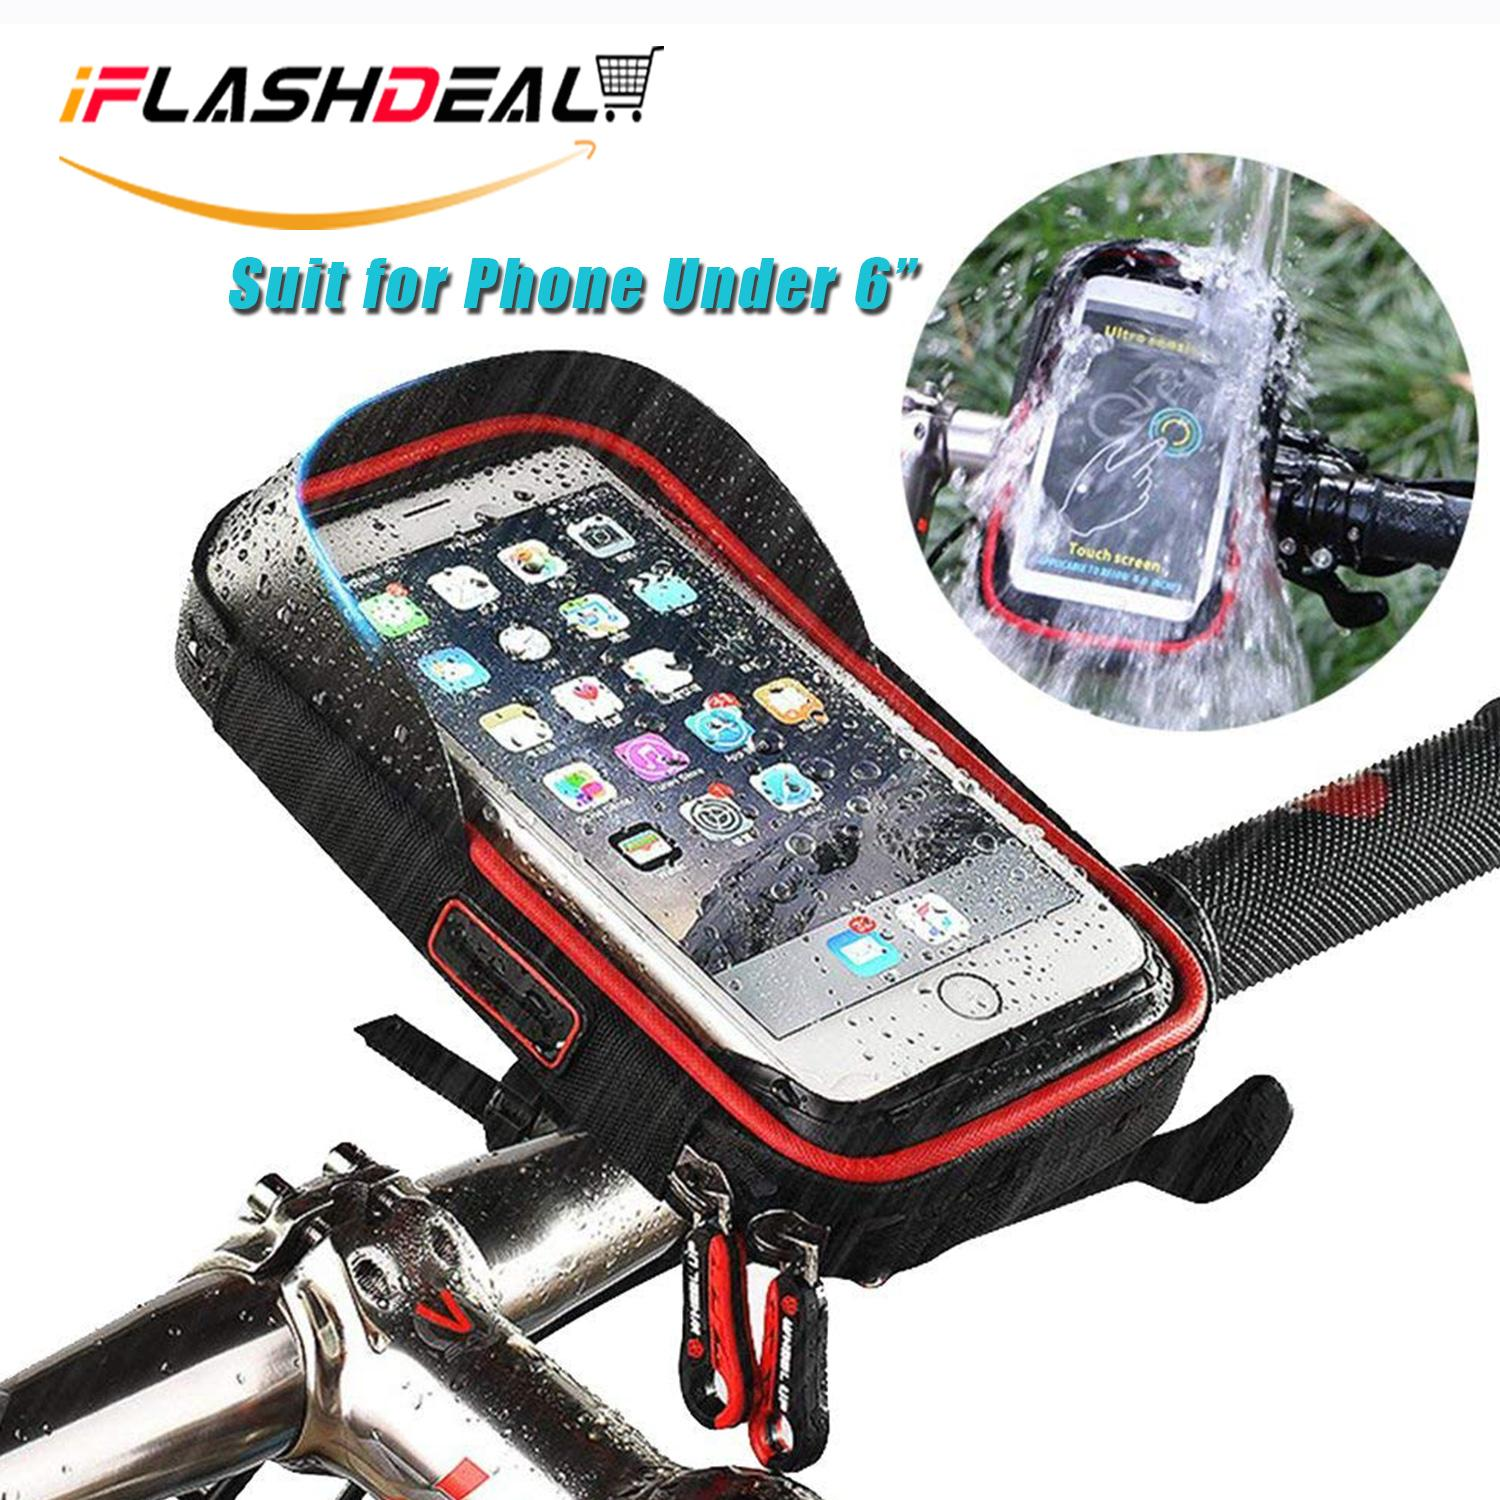 new concept 1c468 96a2e iFlashDeal Waterproof Motorcycle Bike Bicycle Front Bag Case Mount Holder  for Mobile Phone Below 6 inch